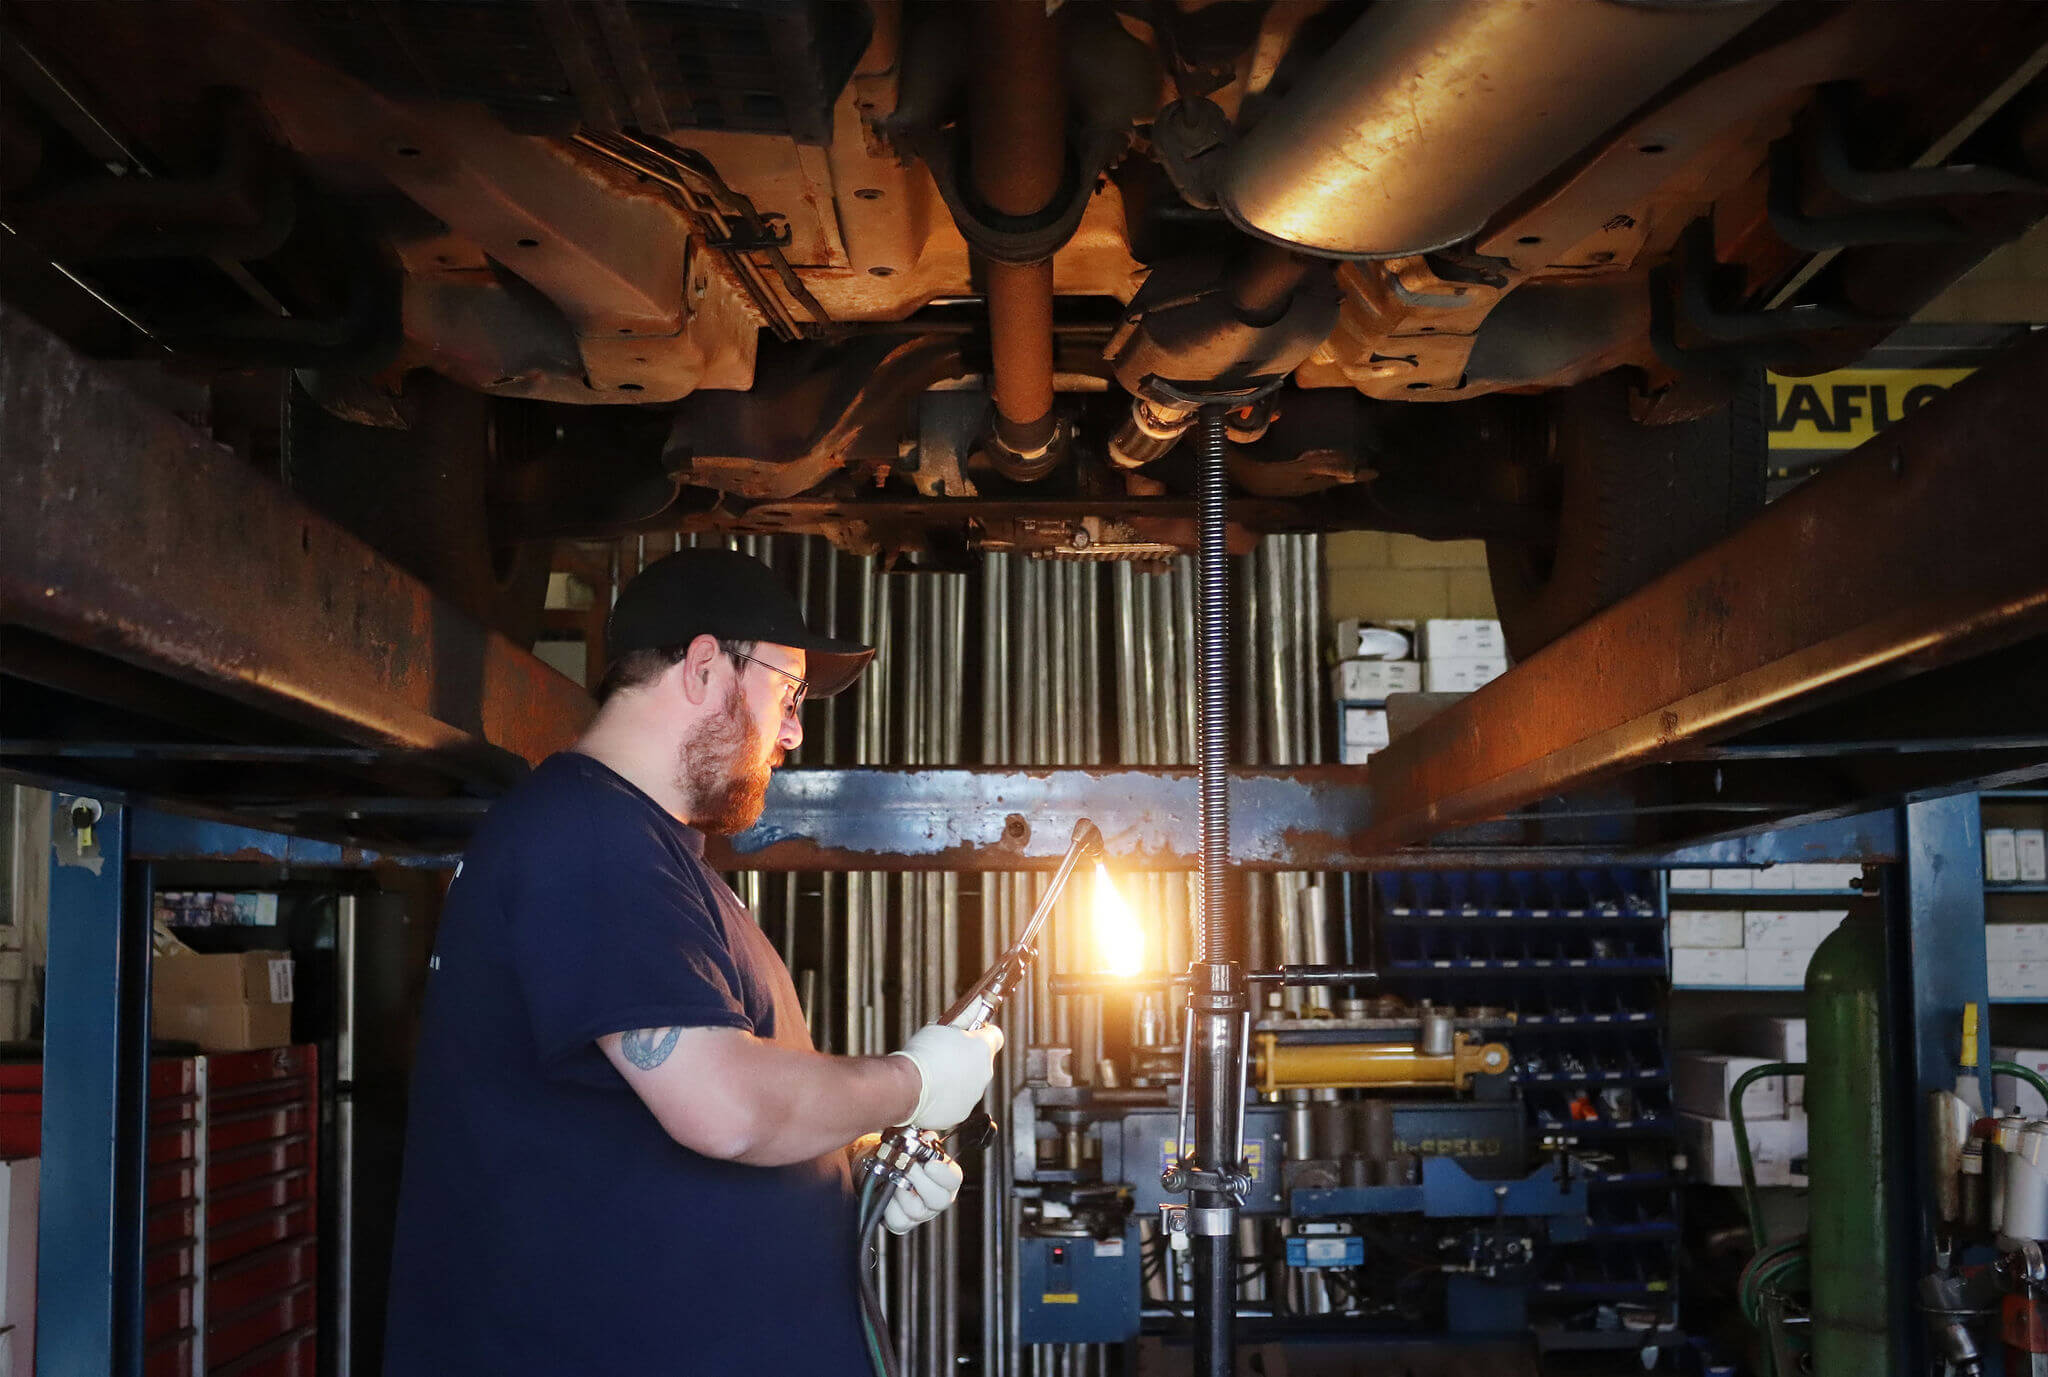 The Catalytic Converter Shop